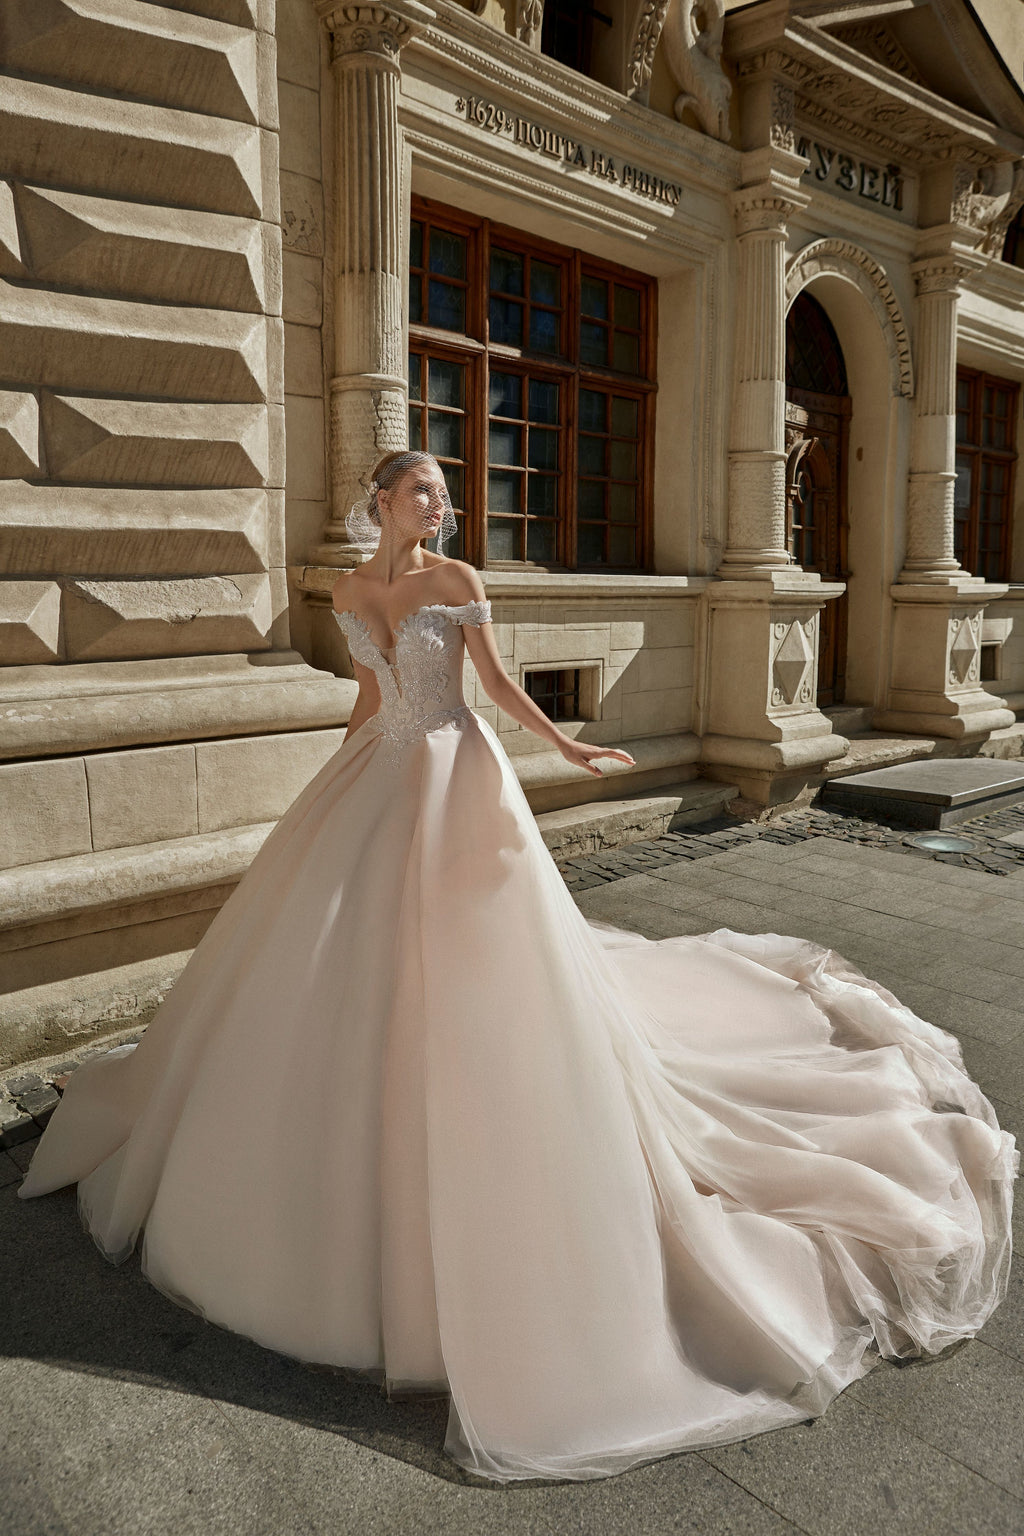 This princess ball gown has a sweetheart bodice decorated with hand-embroidered beaded lace, off-shoulder straps and a tulle and organza layered skirt complete with a wide train.